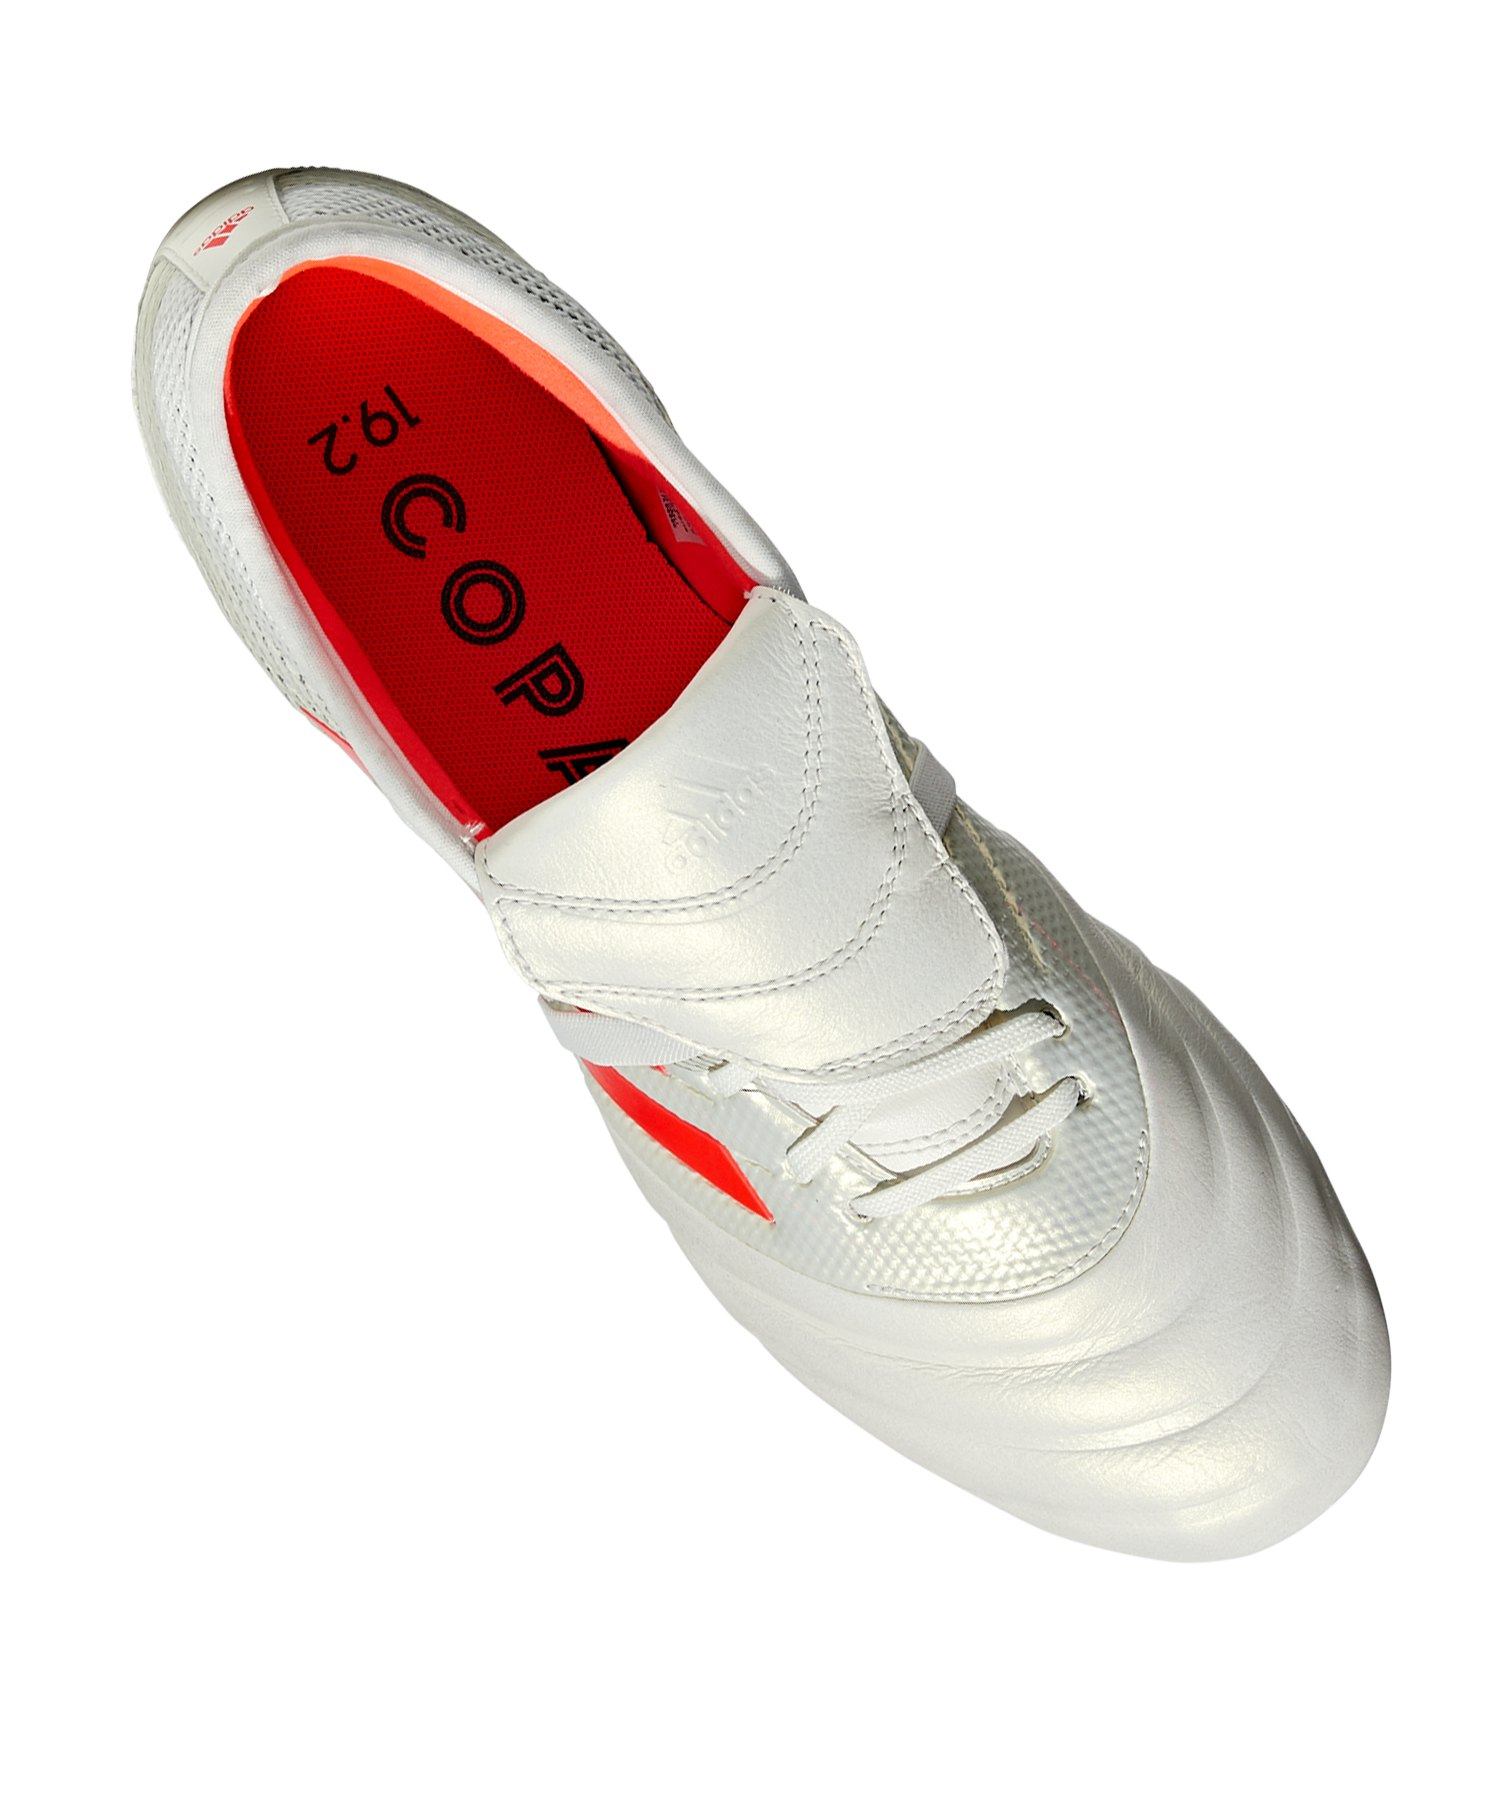 check out c0984 71a70 ... adidas COPA Gloro 19.2 SG Weiss Rot - weiss ...